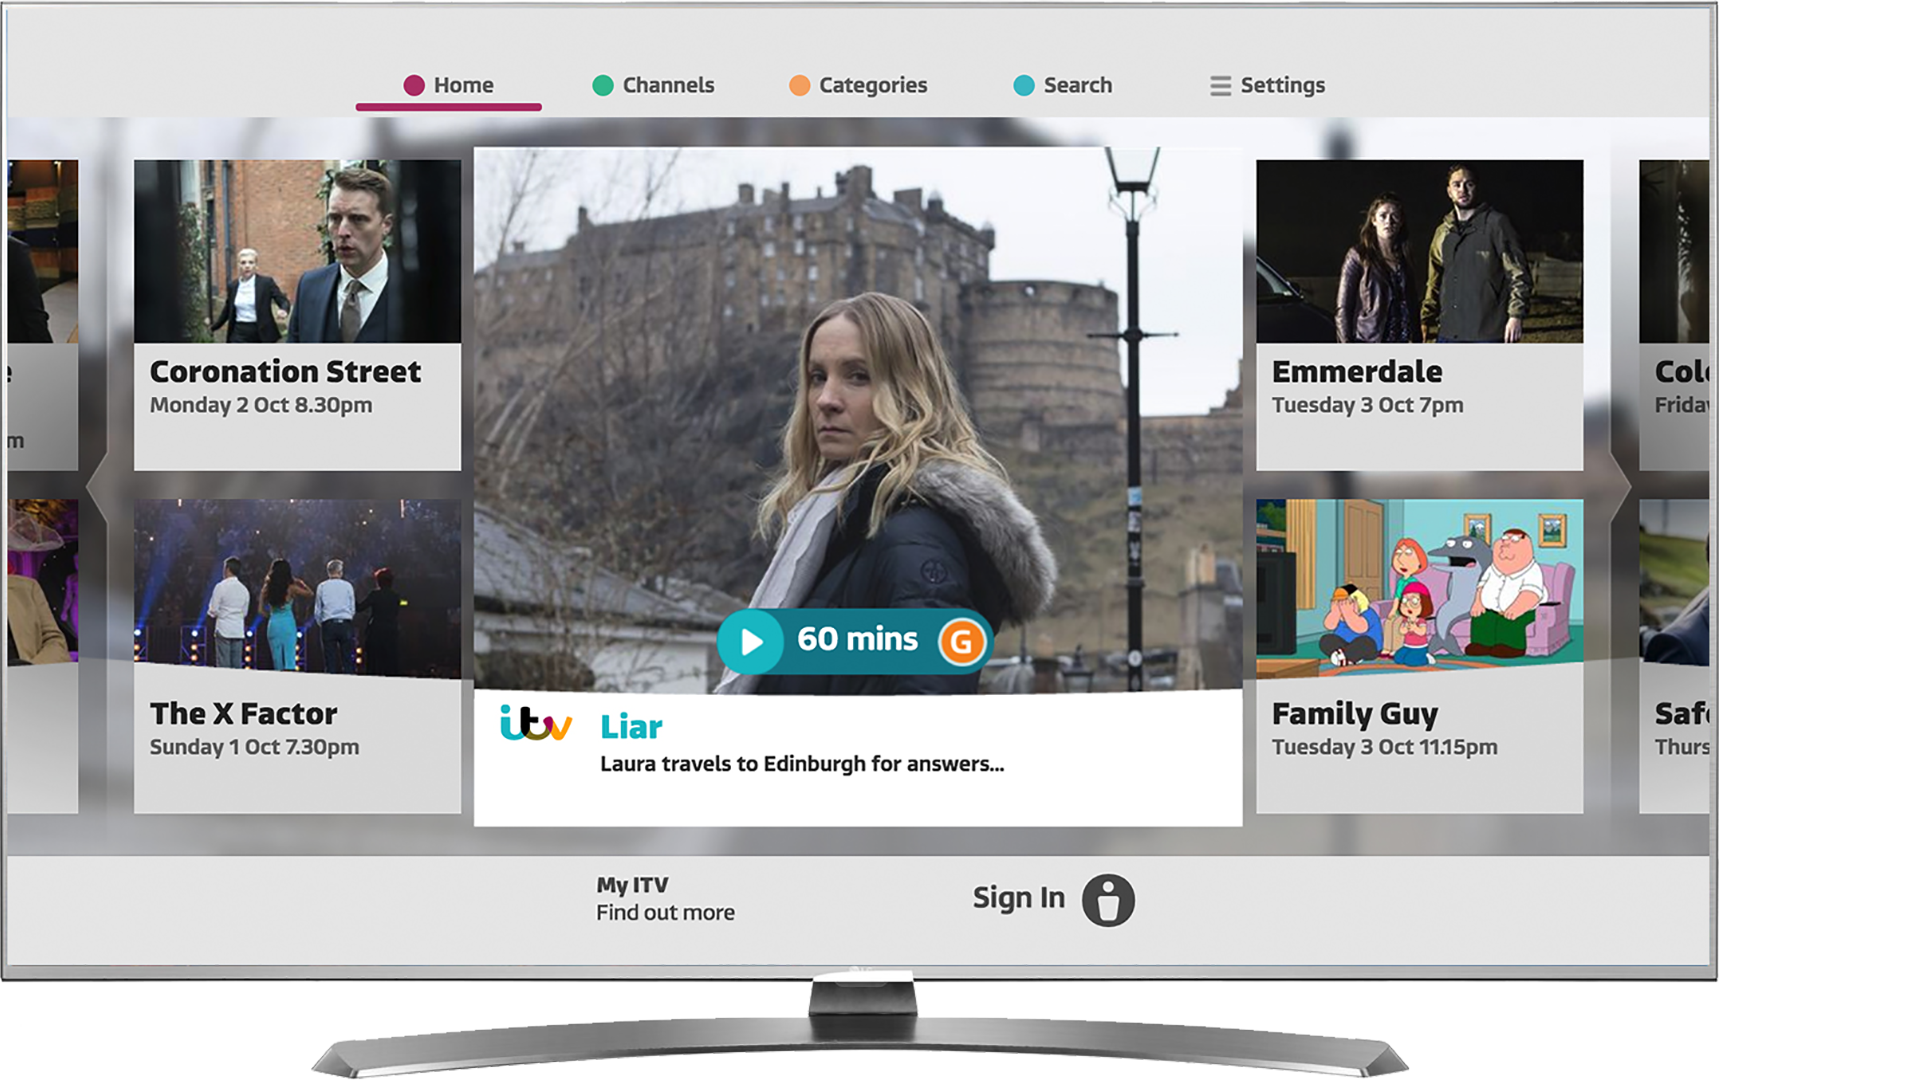 Support Shield Bend And Twist Your Remote Control To Change Channels Itv Hub Brings A World Of Entertainment Nvidia Its Place Get Exclusive Video Catch Up On All Favourite Shows